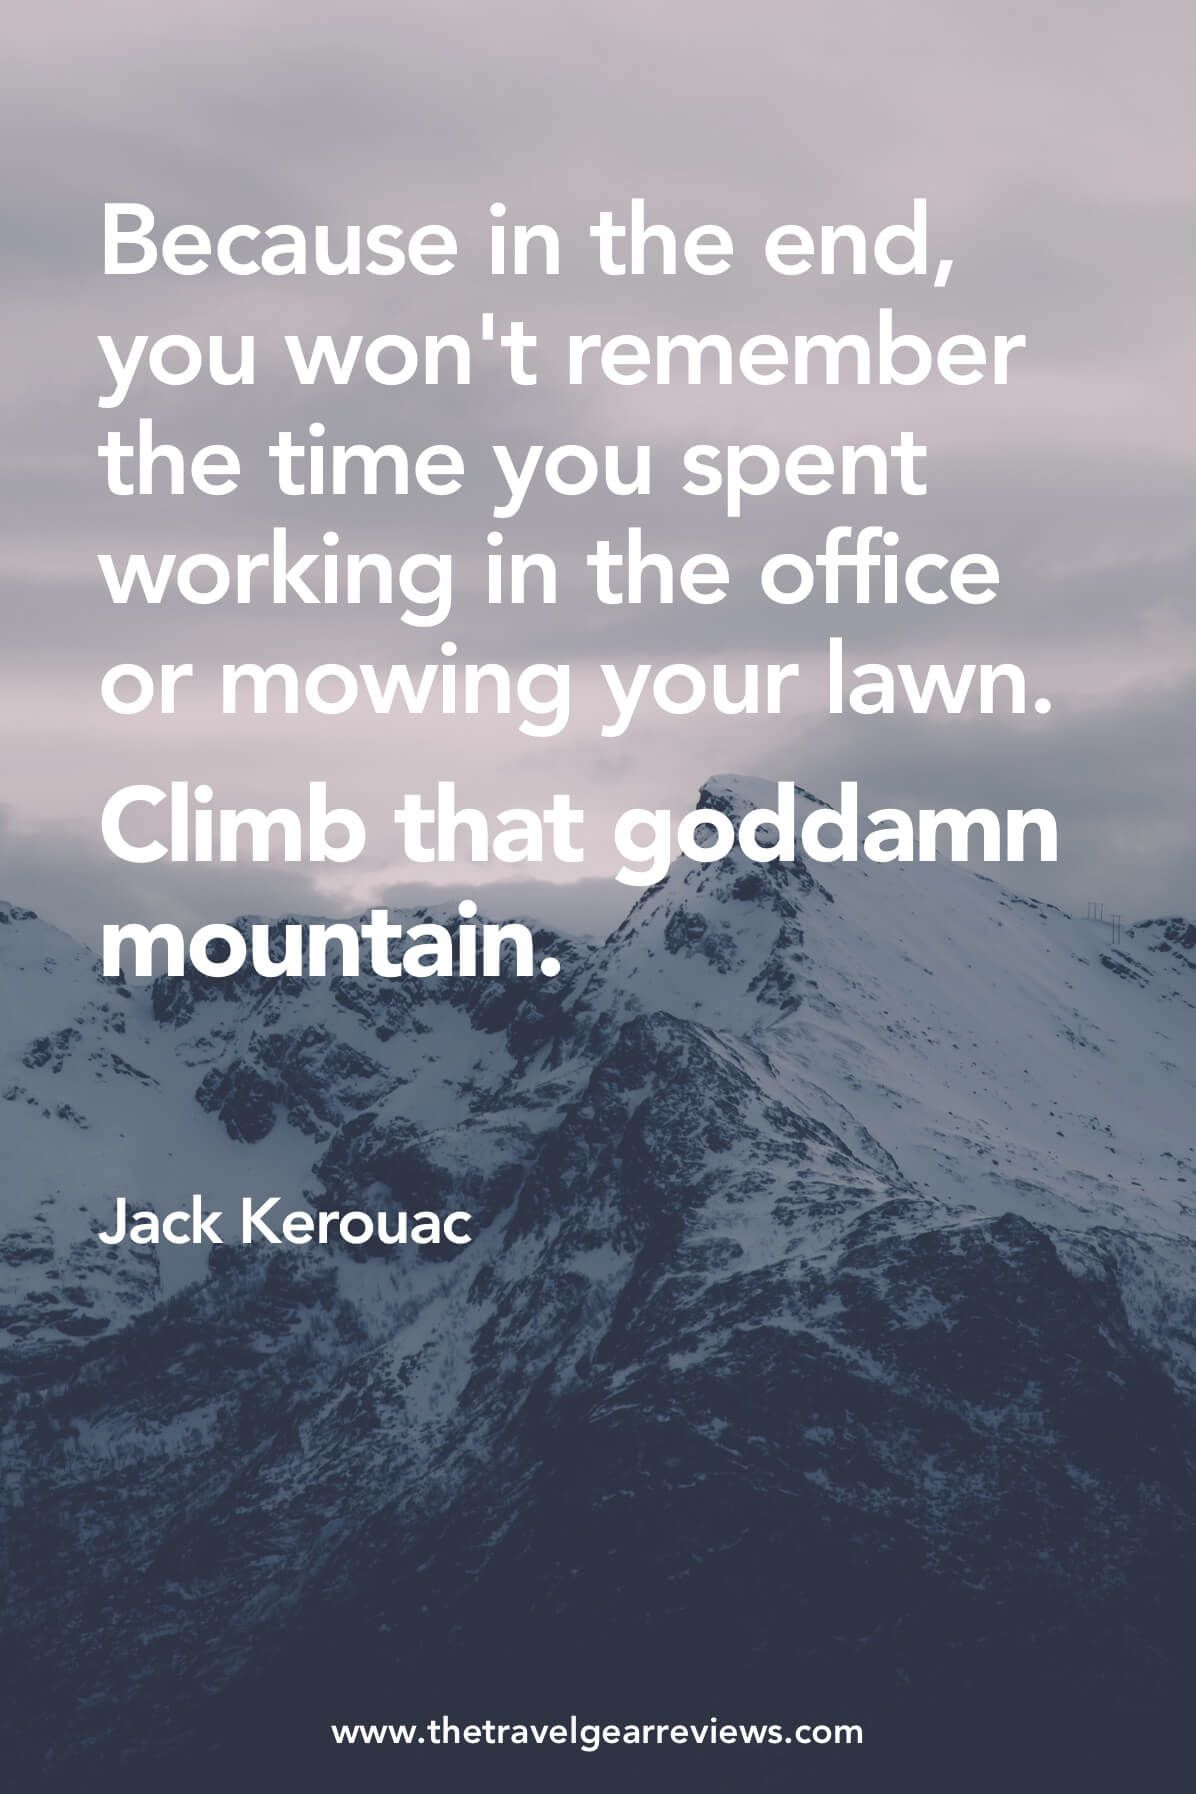 100 Best Travel Quotes And Saying Travel Tips Pinterest Travel